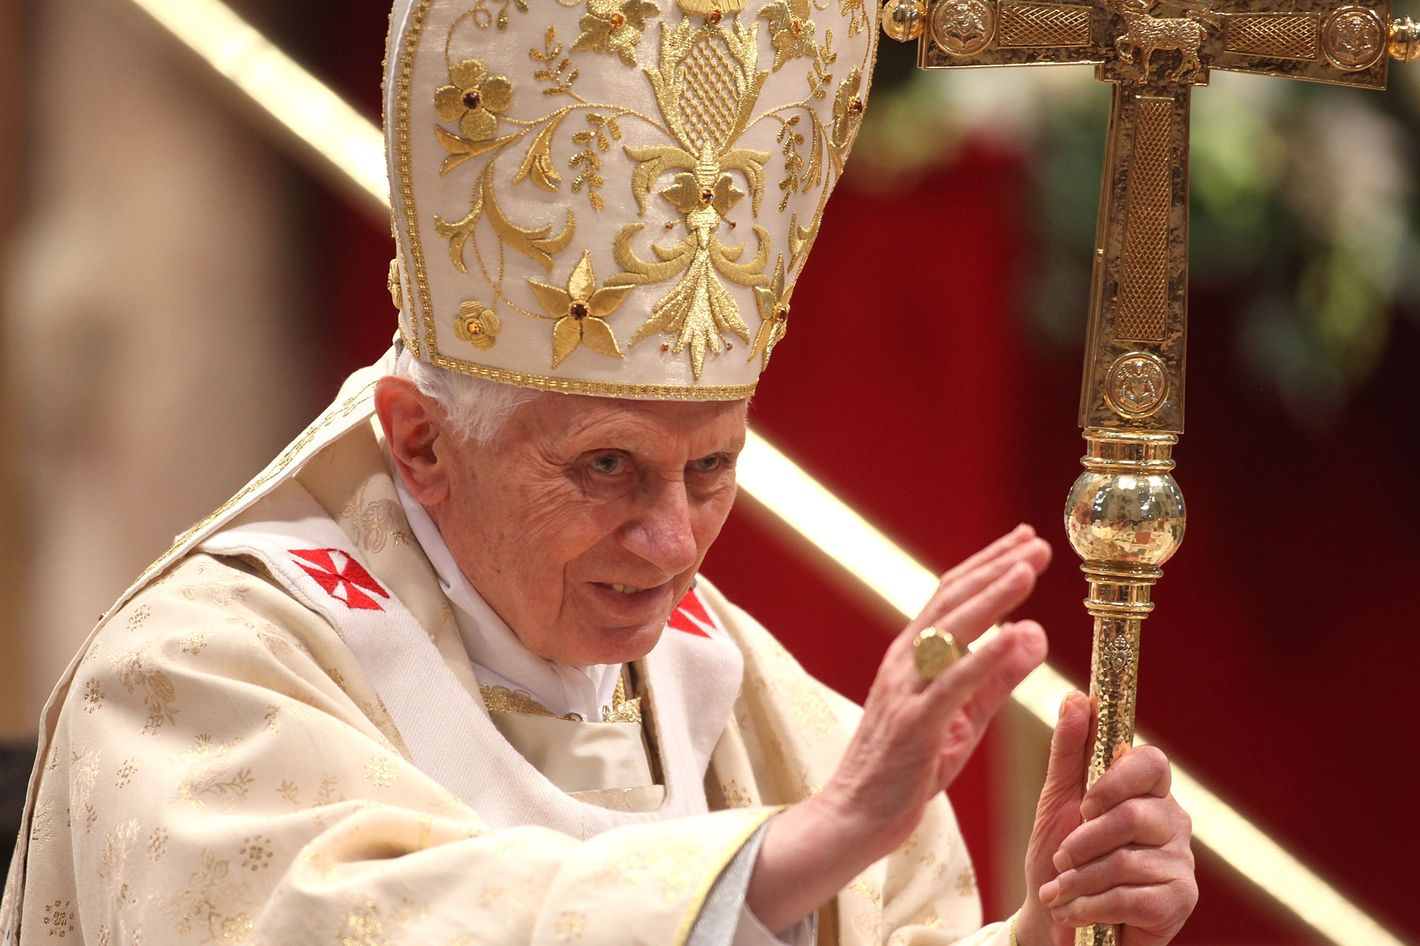 VATICAN CITY, VATICAN - FEBRUARY 19:  Pope Benedict XVI waves as he leaves St. Peter's Basilica at the end of a mass with  newly appointed cardinals on February 19, 2012 in Vatican City, Vatican. The 84 year old Pontiff installed 22 new cardinals during his fourth concistory, who will be responsible for choosing his sucessor.  (Photo by Franco Origlia/Getty Images)